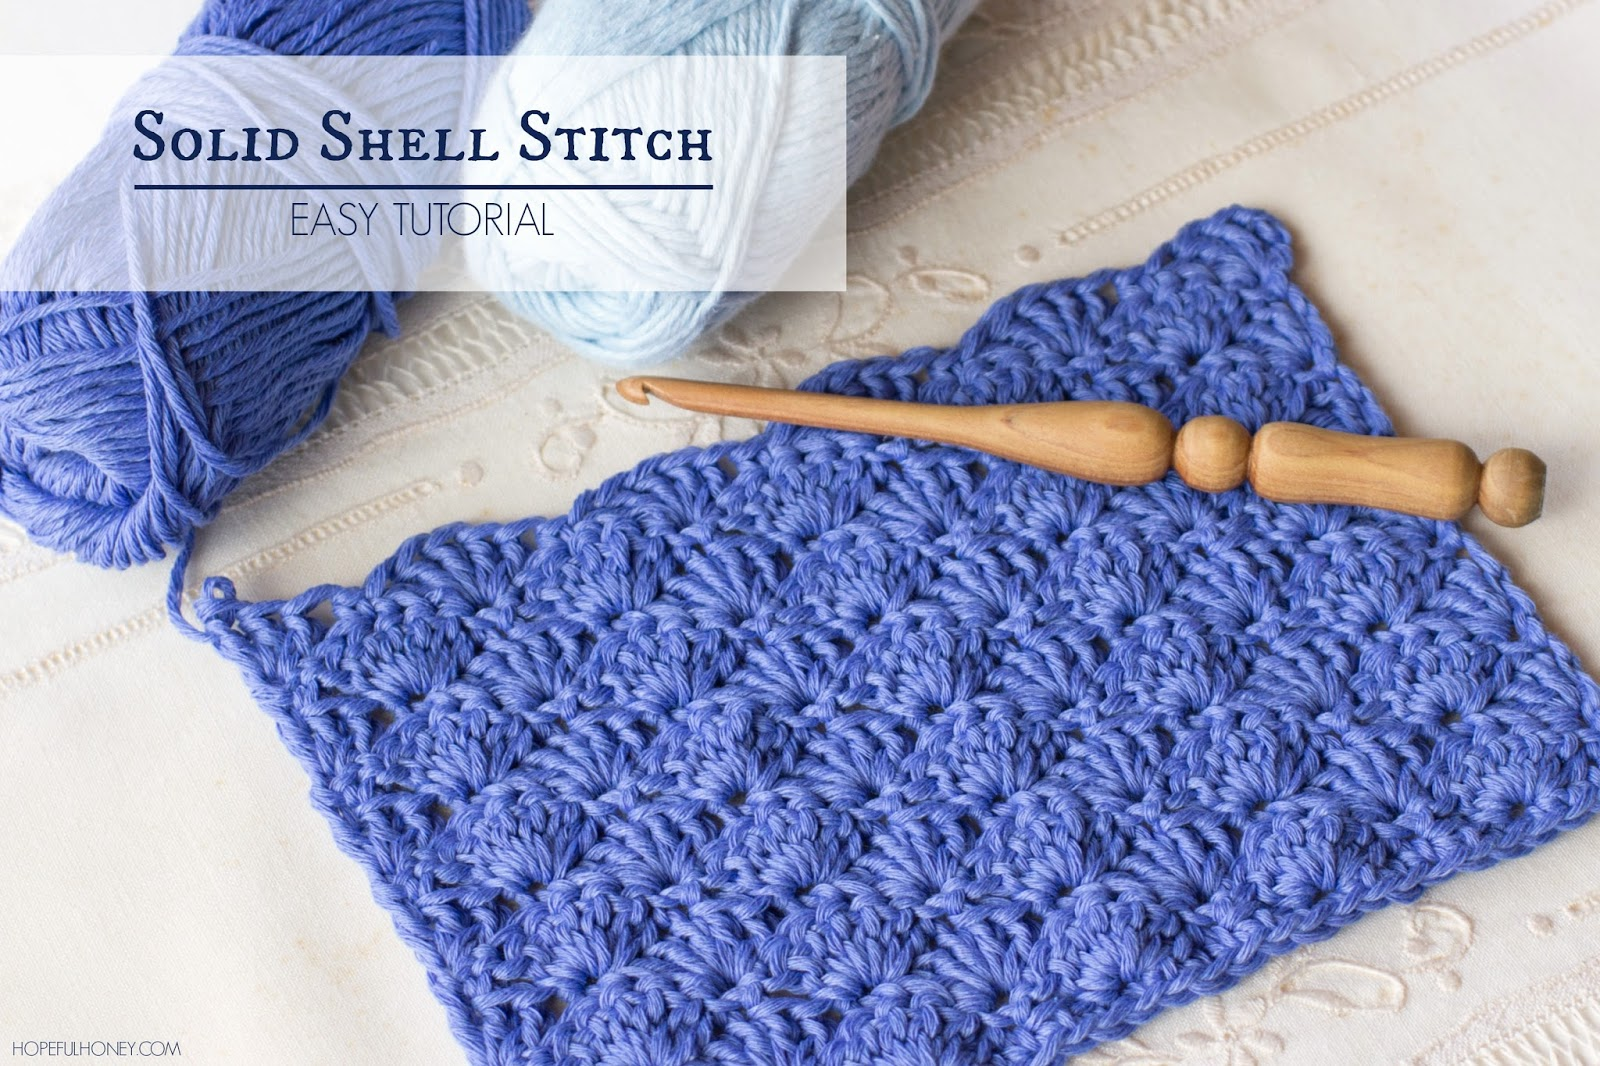 Crochet Stitches Tutorial : shell stitch is one of the easiest stitches to learn as the stitch ...